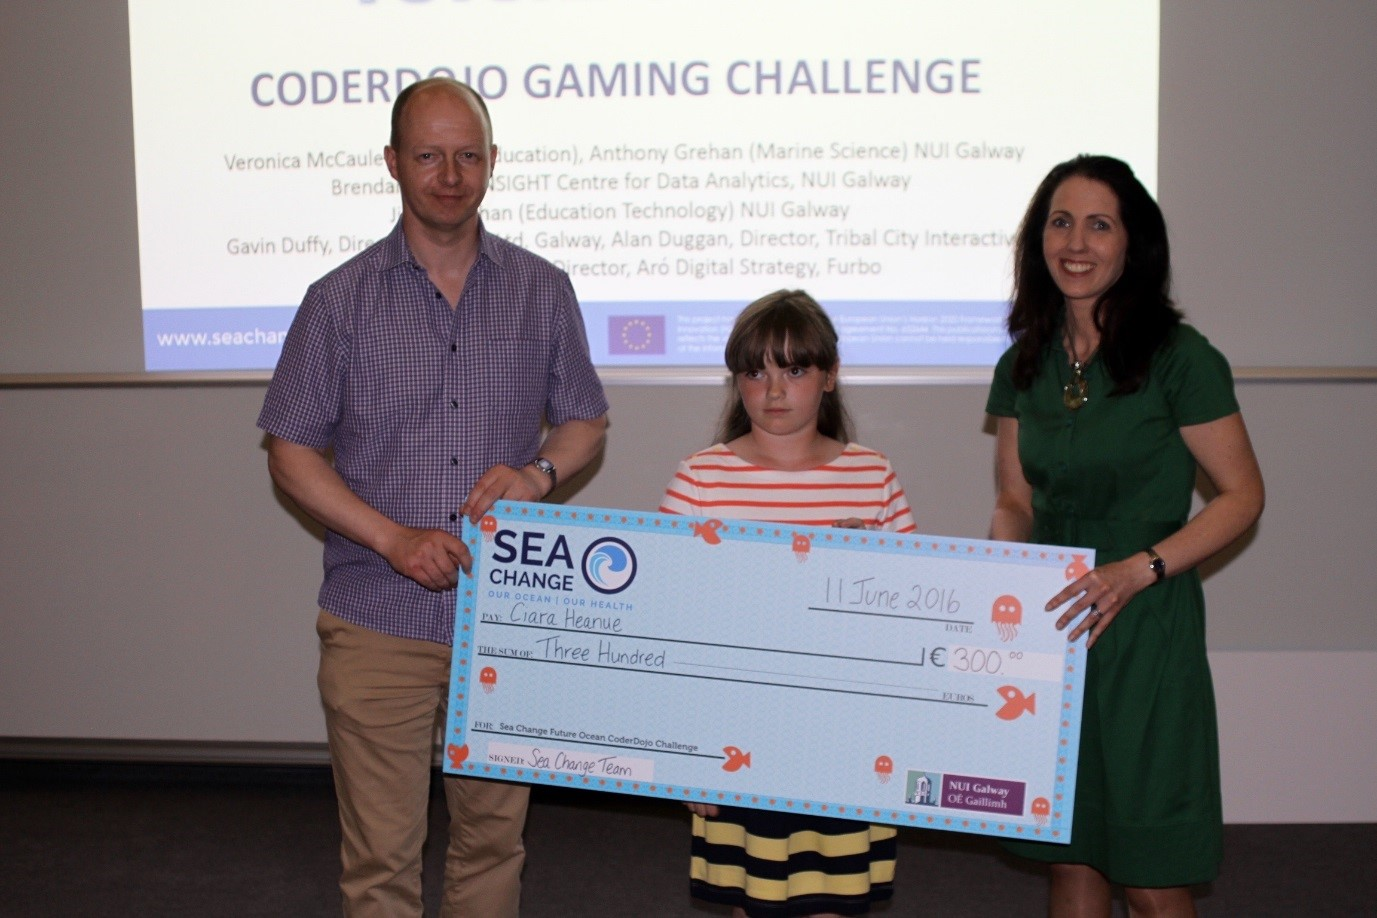 Sea Change CoderDojo